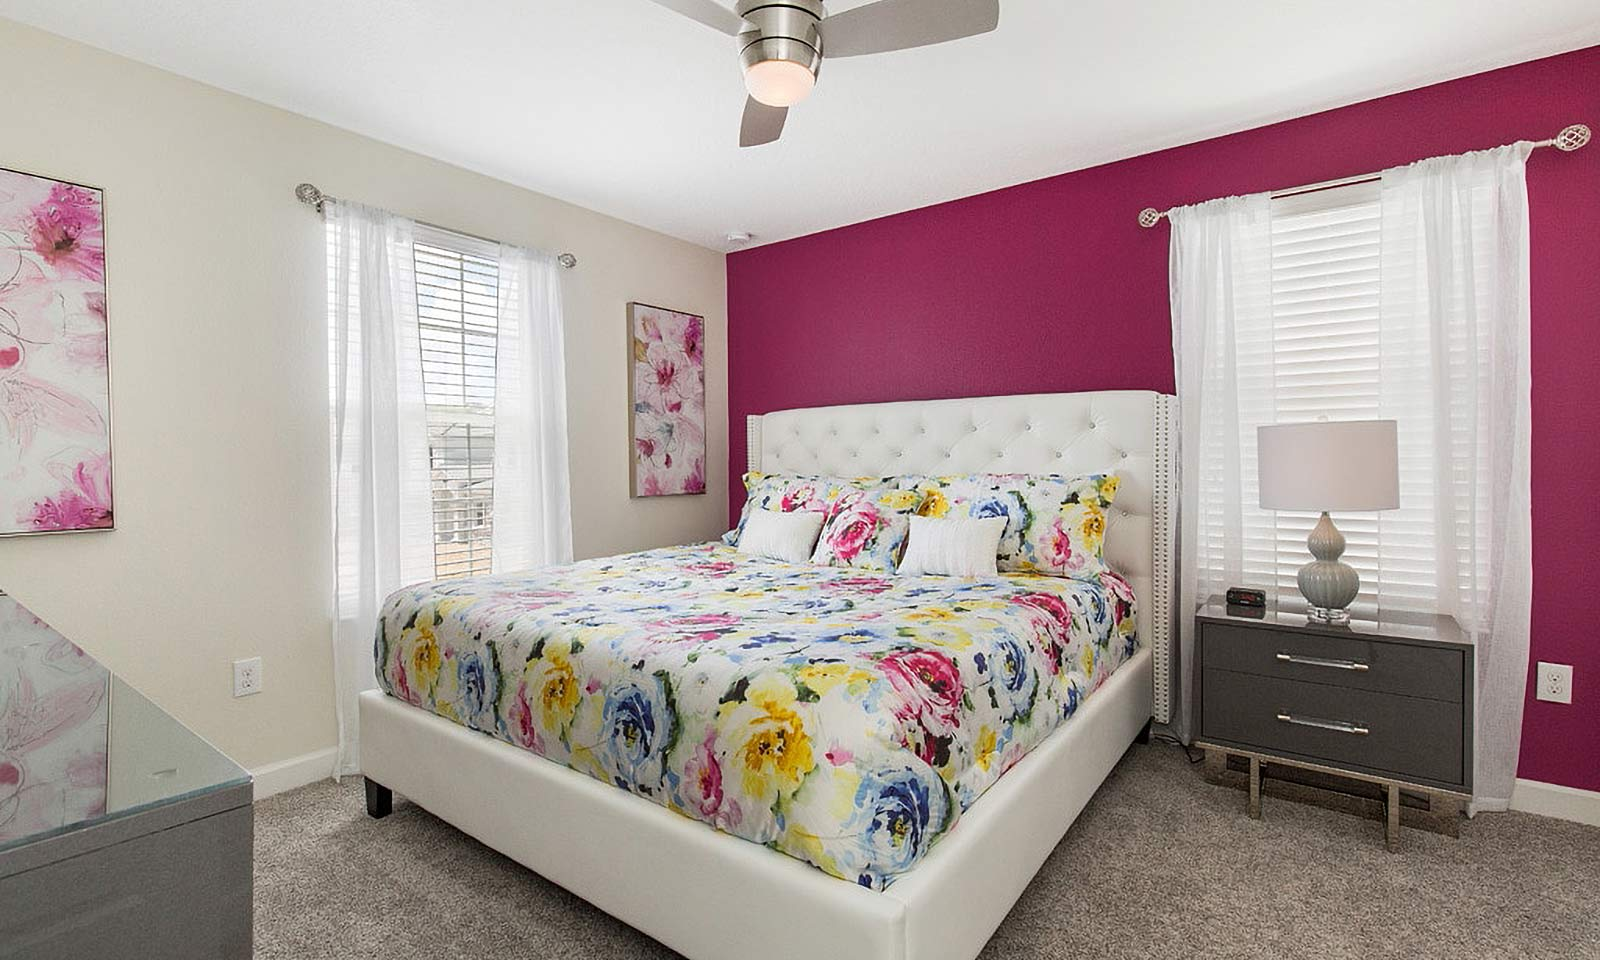 The Colorful Retreat-182540